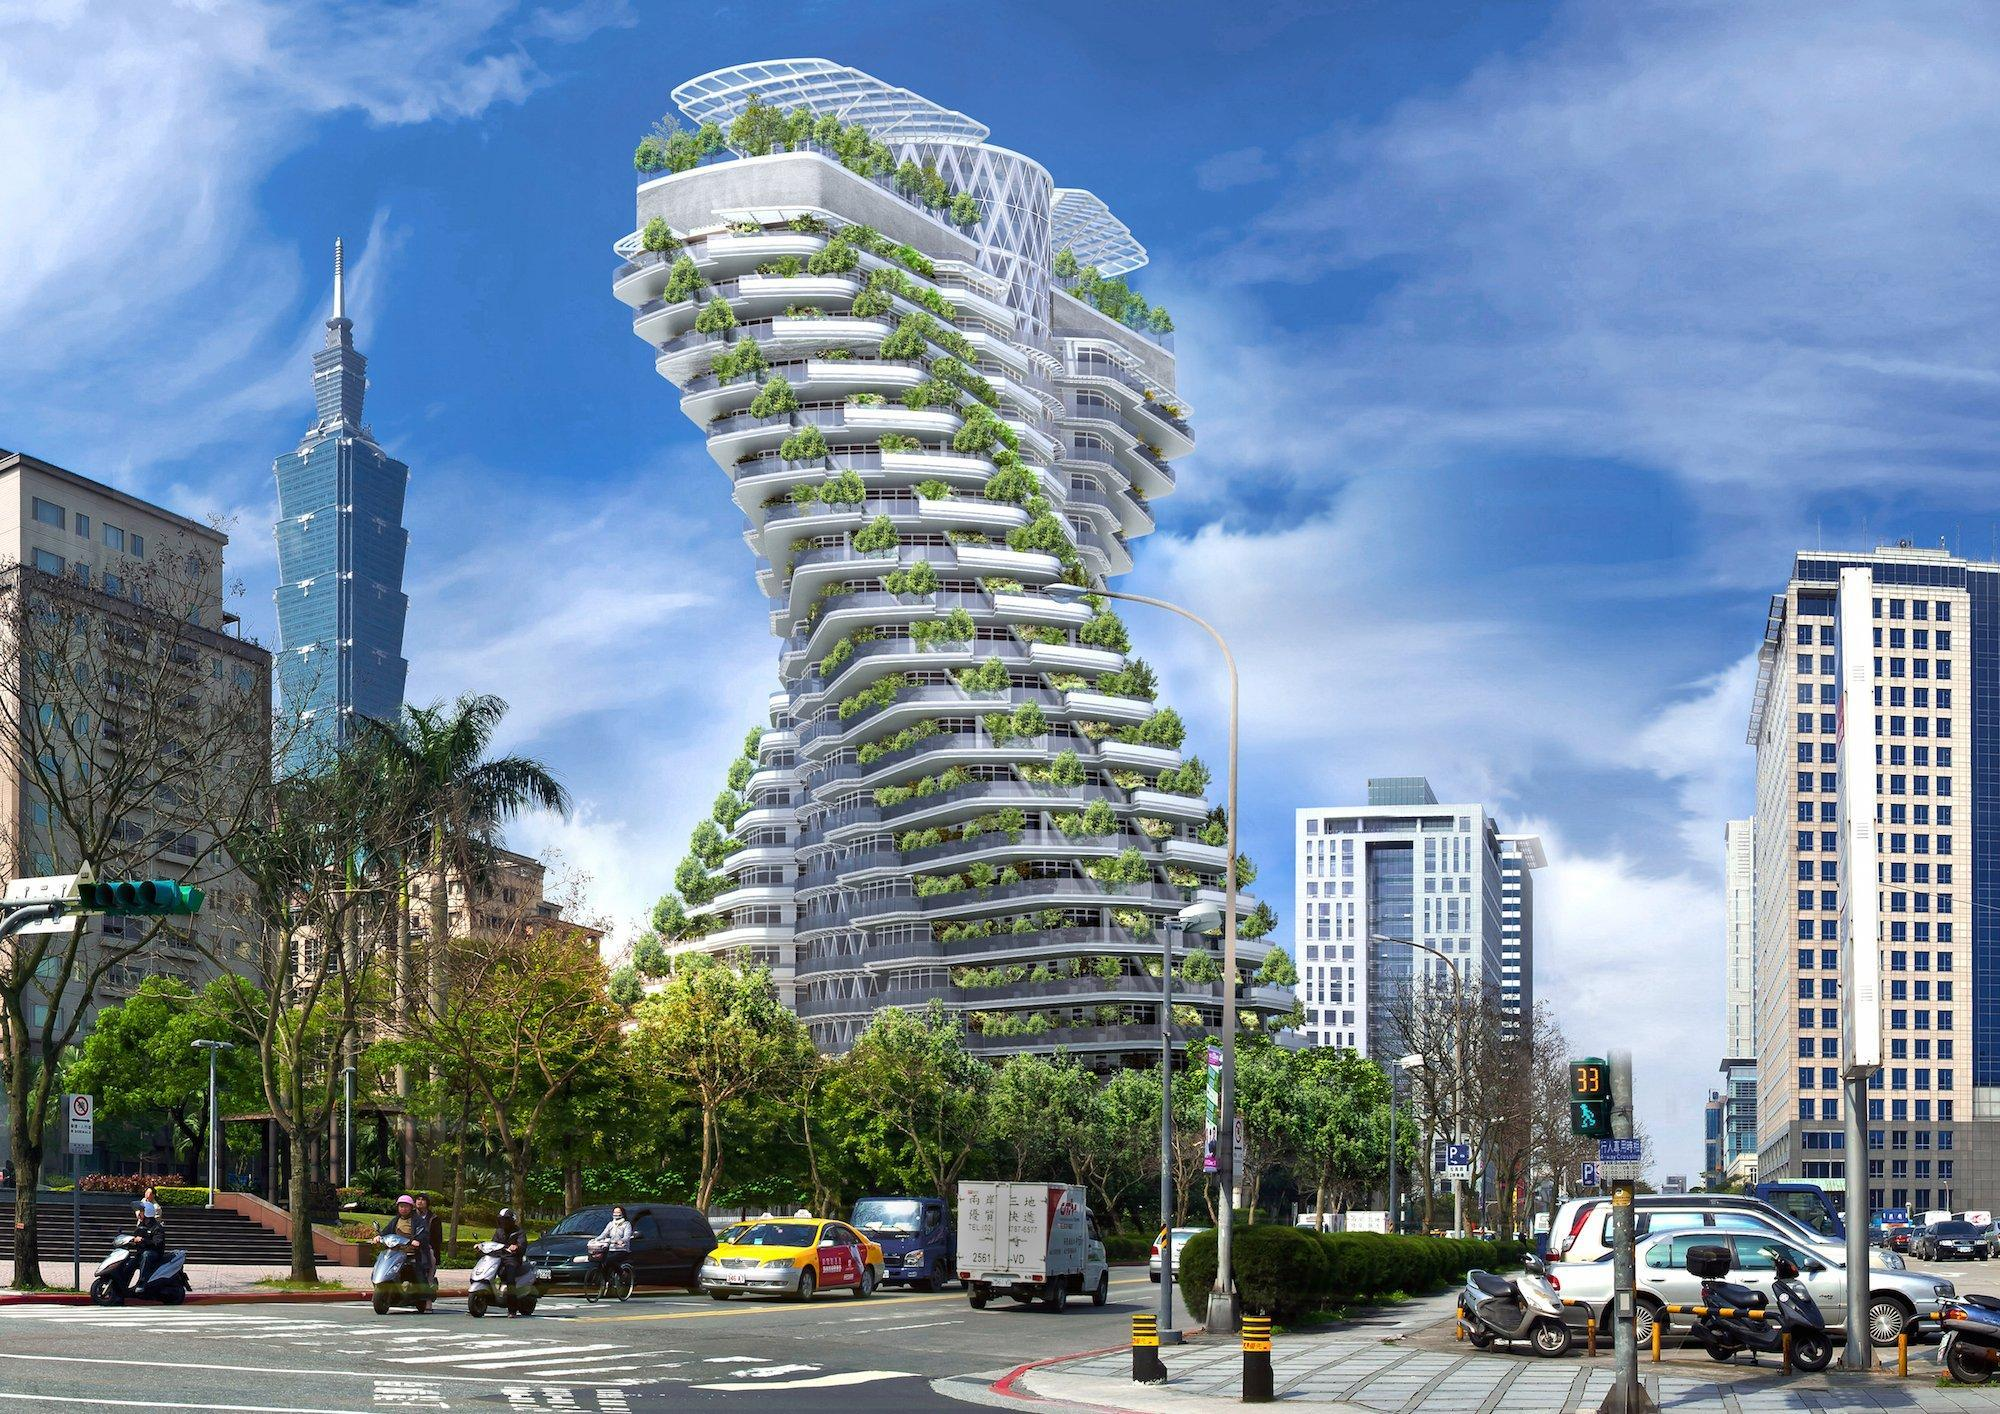 A smog eating twisting tower that features luxury apartments will